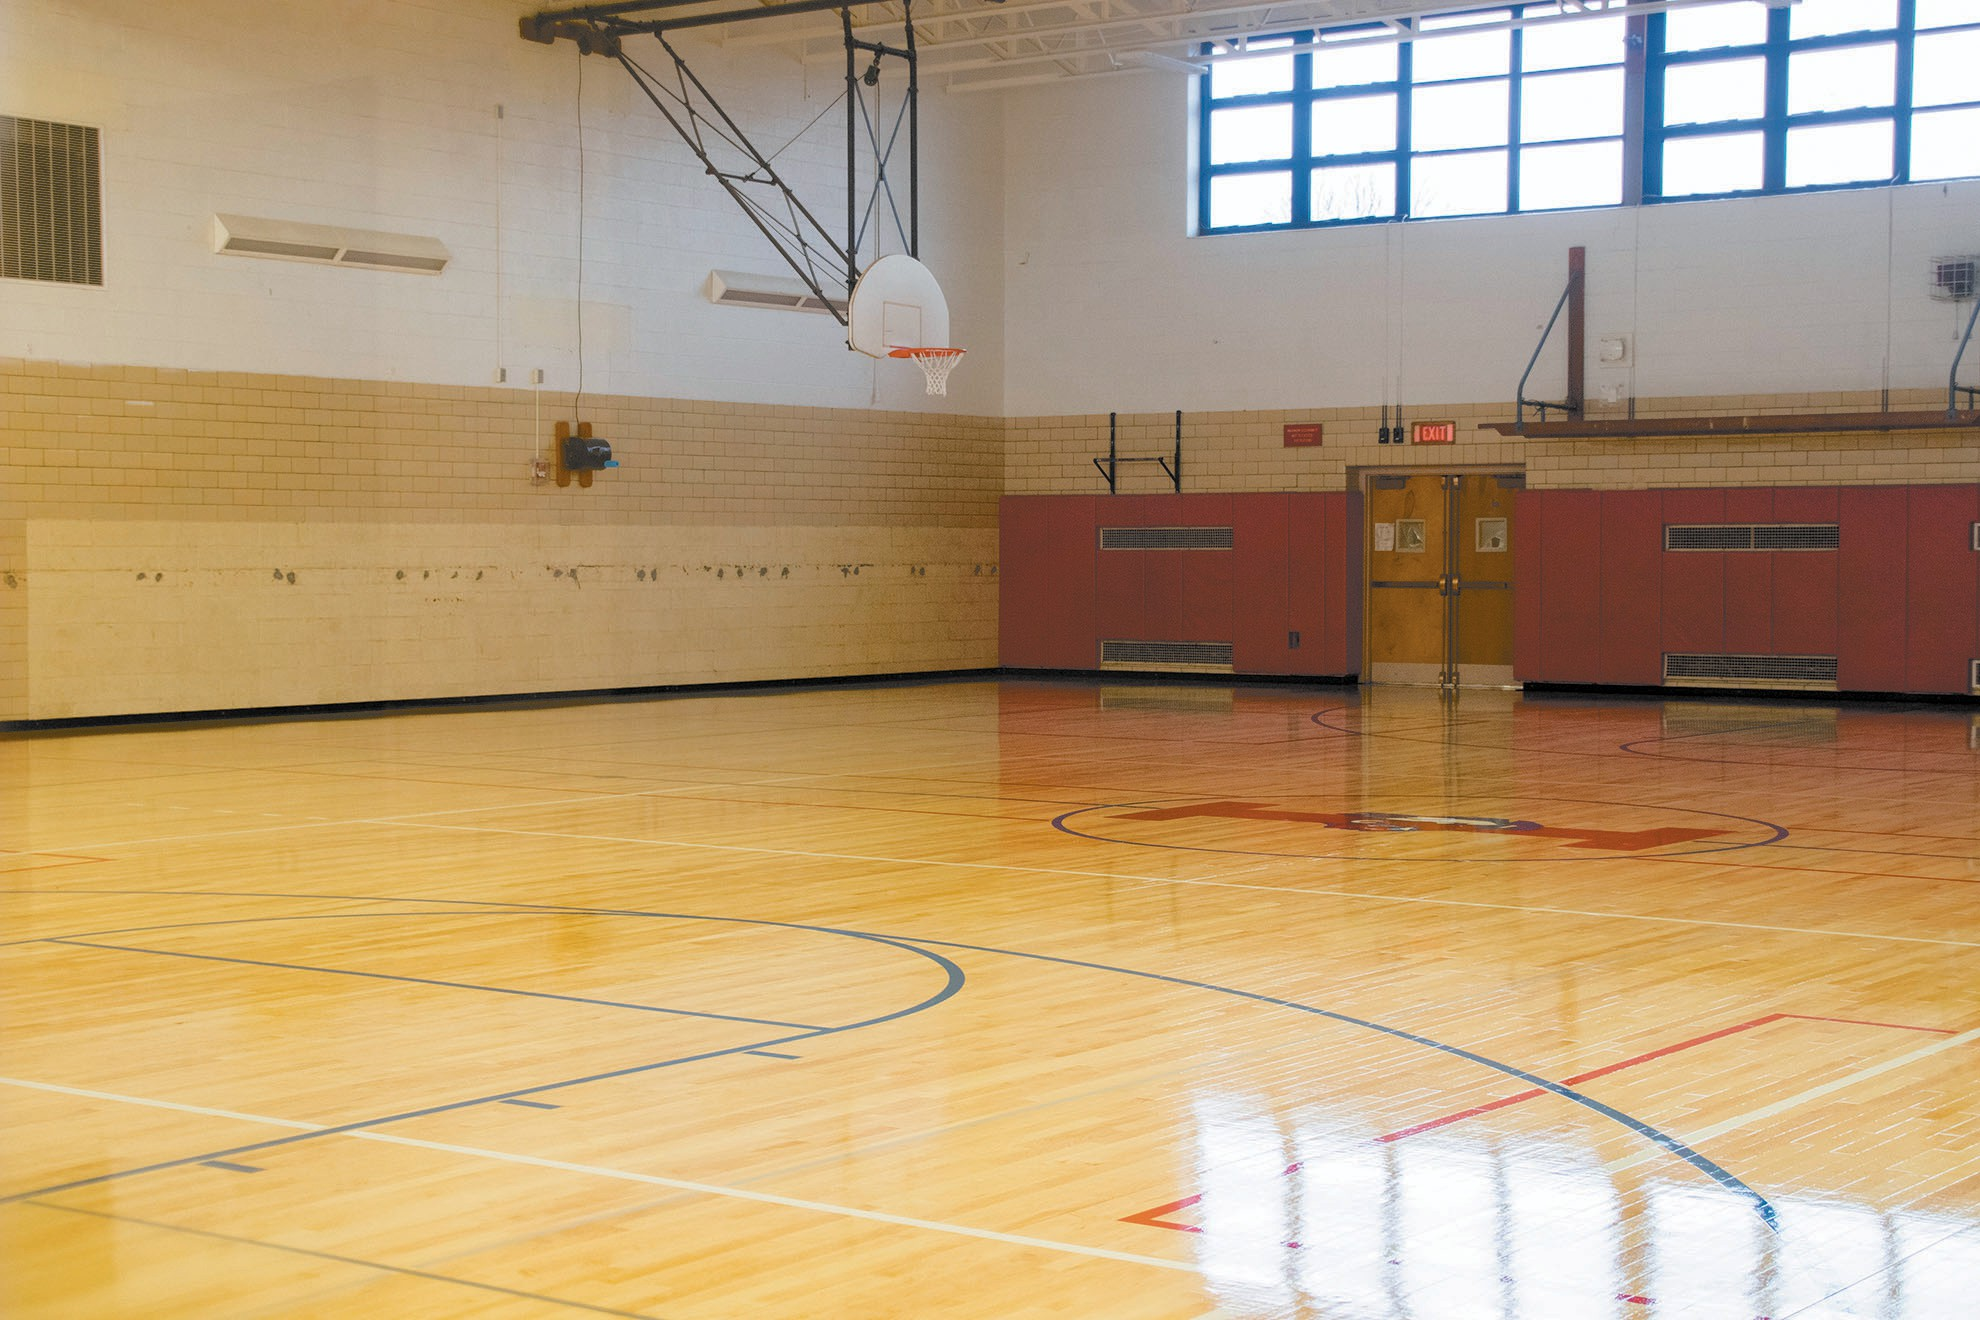 Reserve Funds To Replace Gym Floor